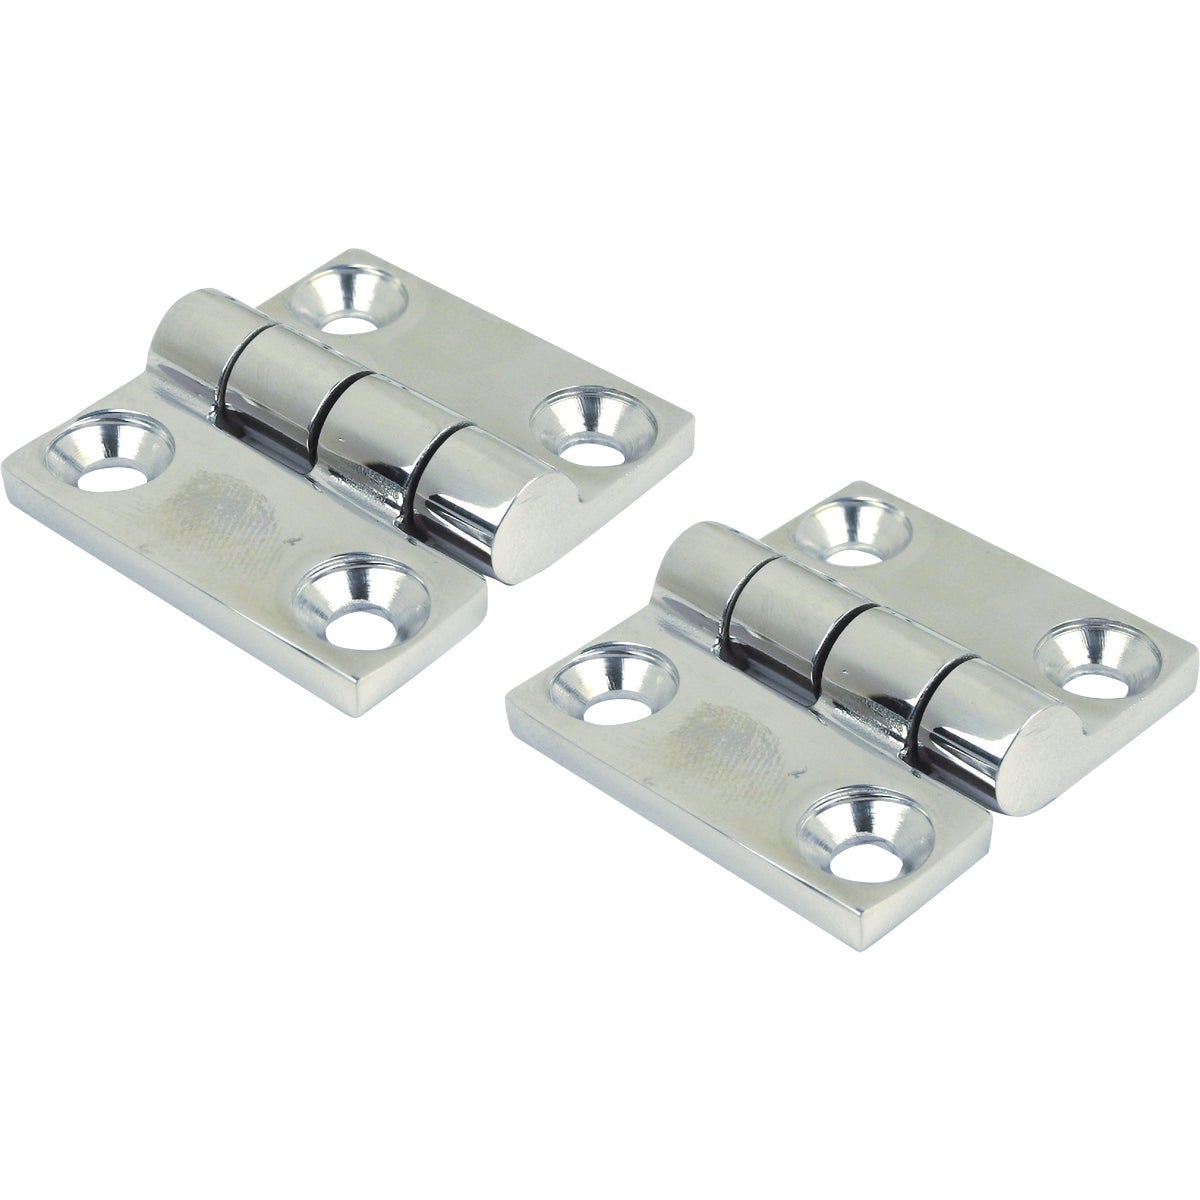 1-1/2X1-1/2SS BUTT HINGE - 33901 by Seachoice Prod